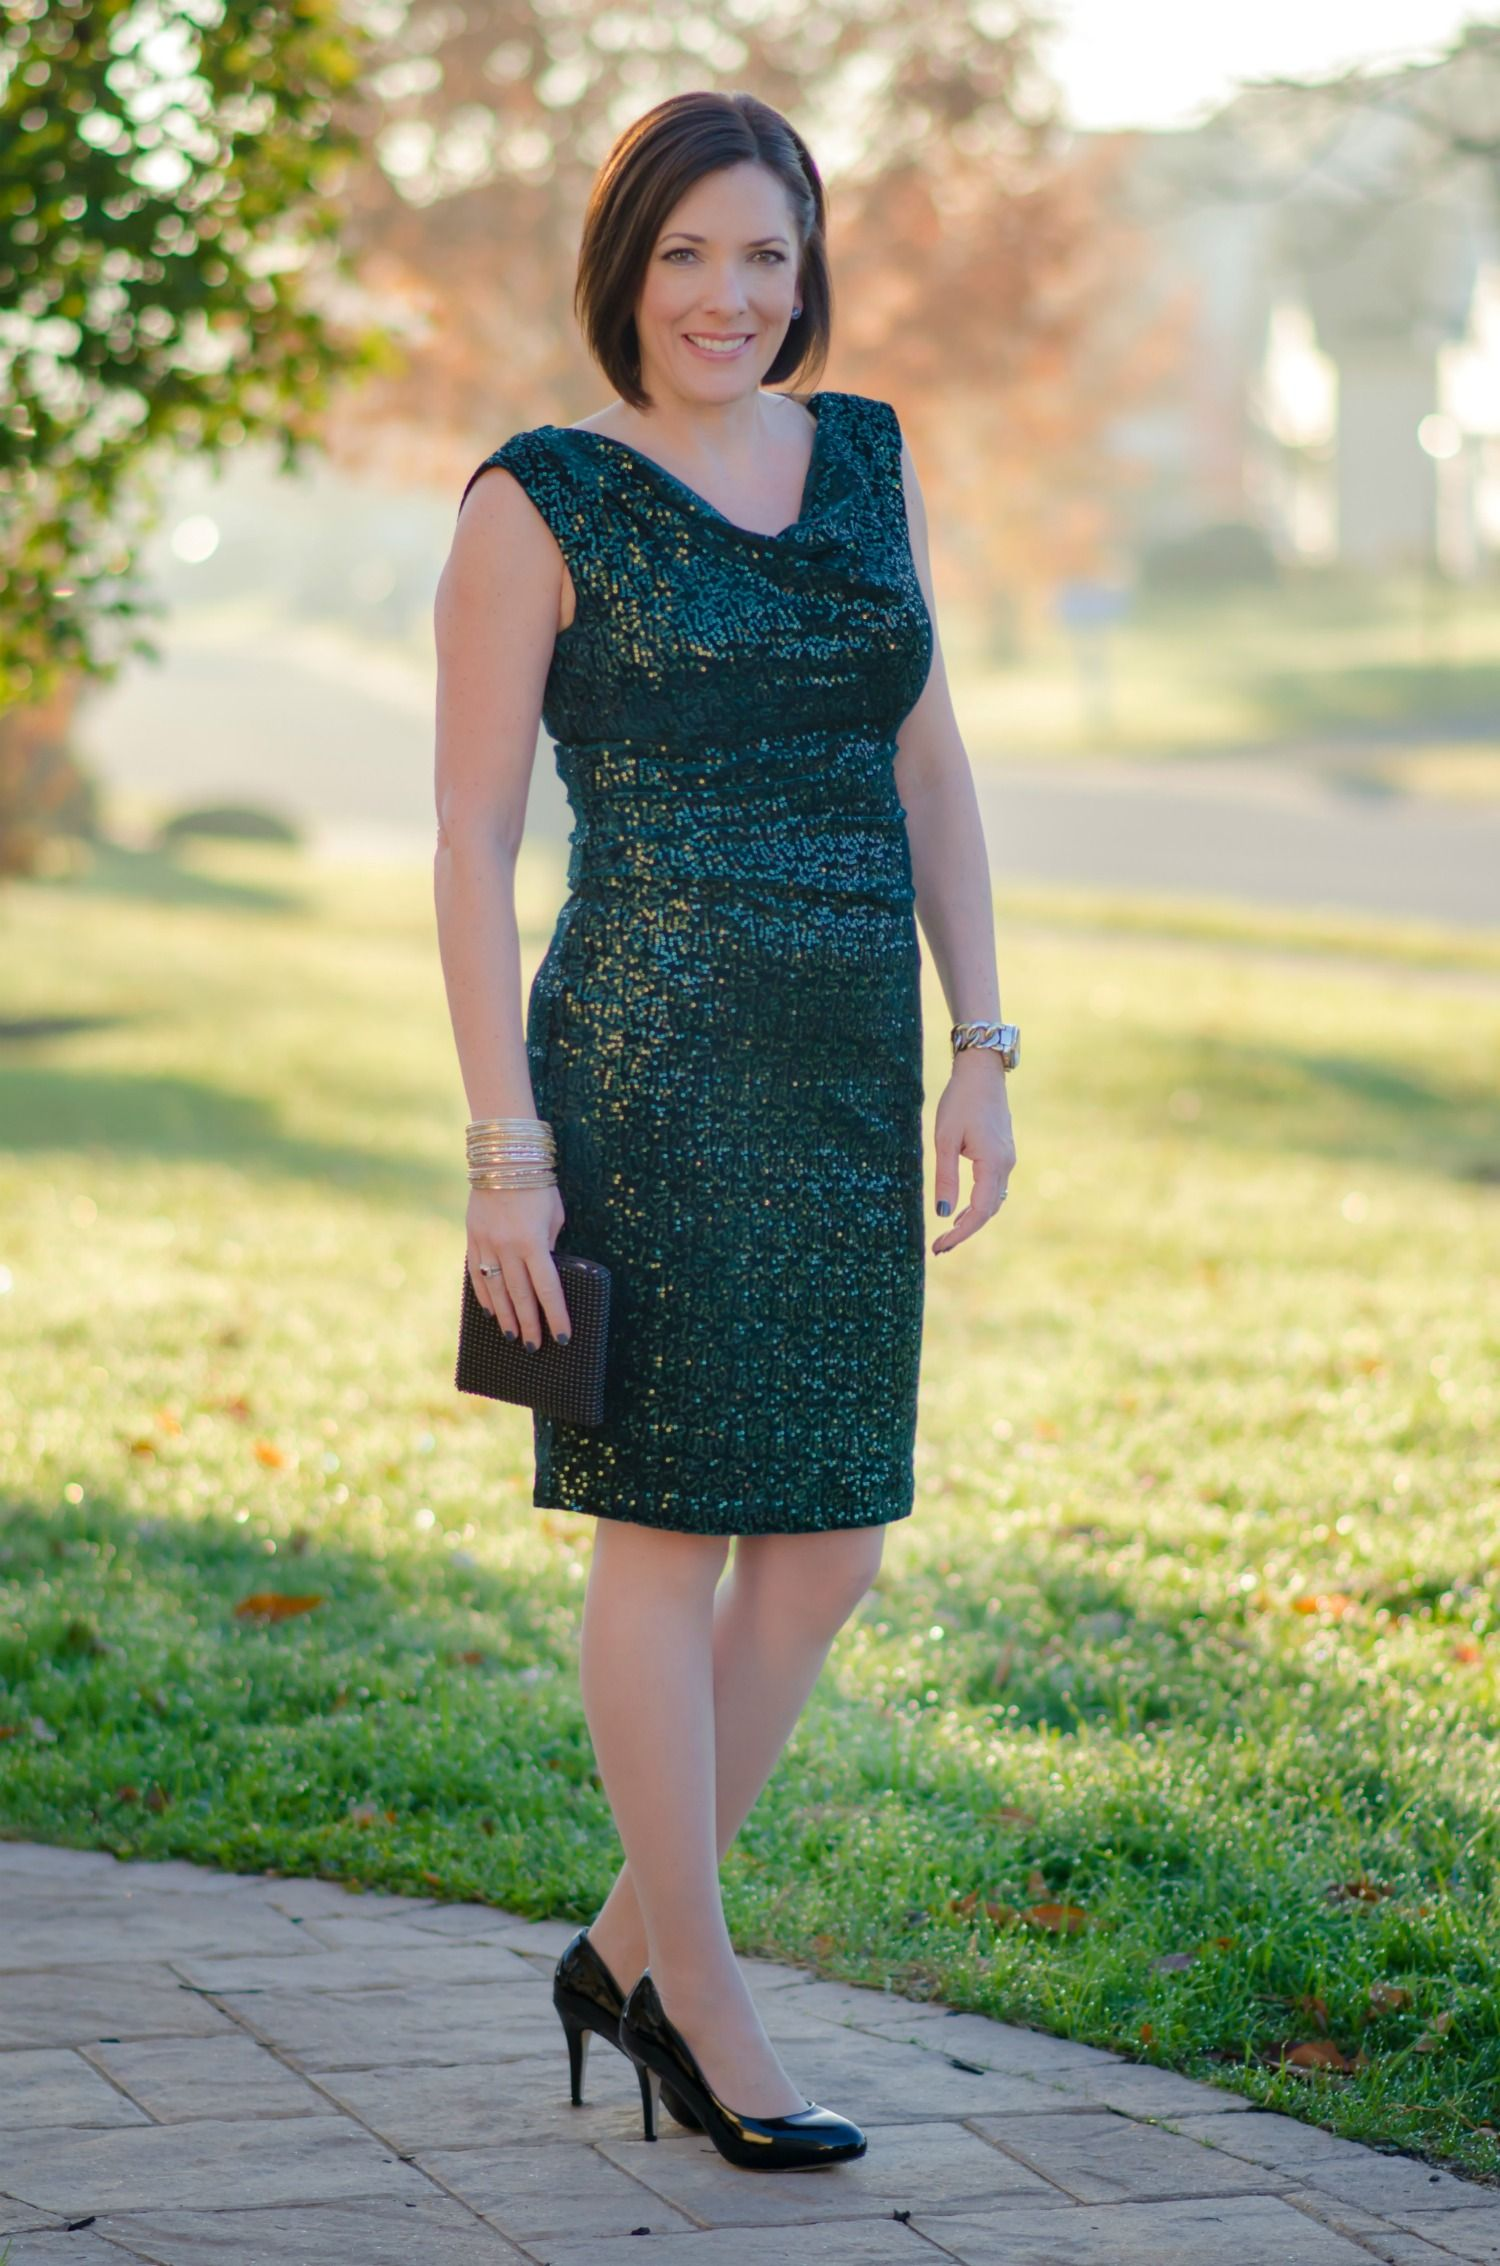 61afba8437d56 Holiday Party Dress from @RossStores #RossBargainHunter *In partnership  with Ross Dress for Less #RossBargainHunter